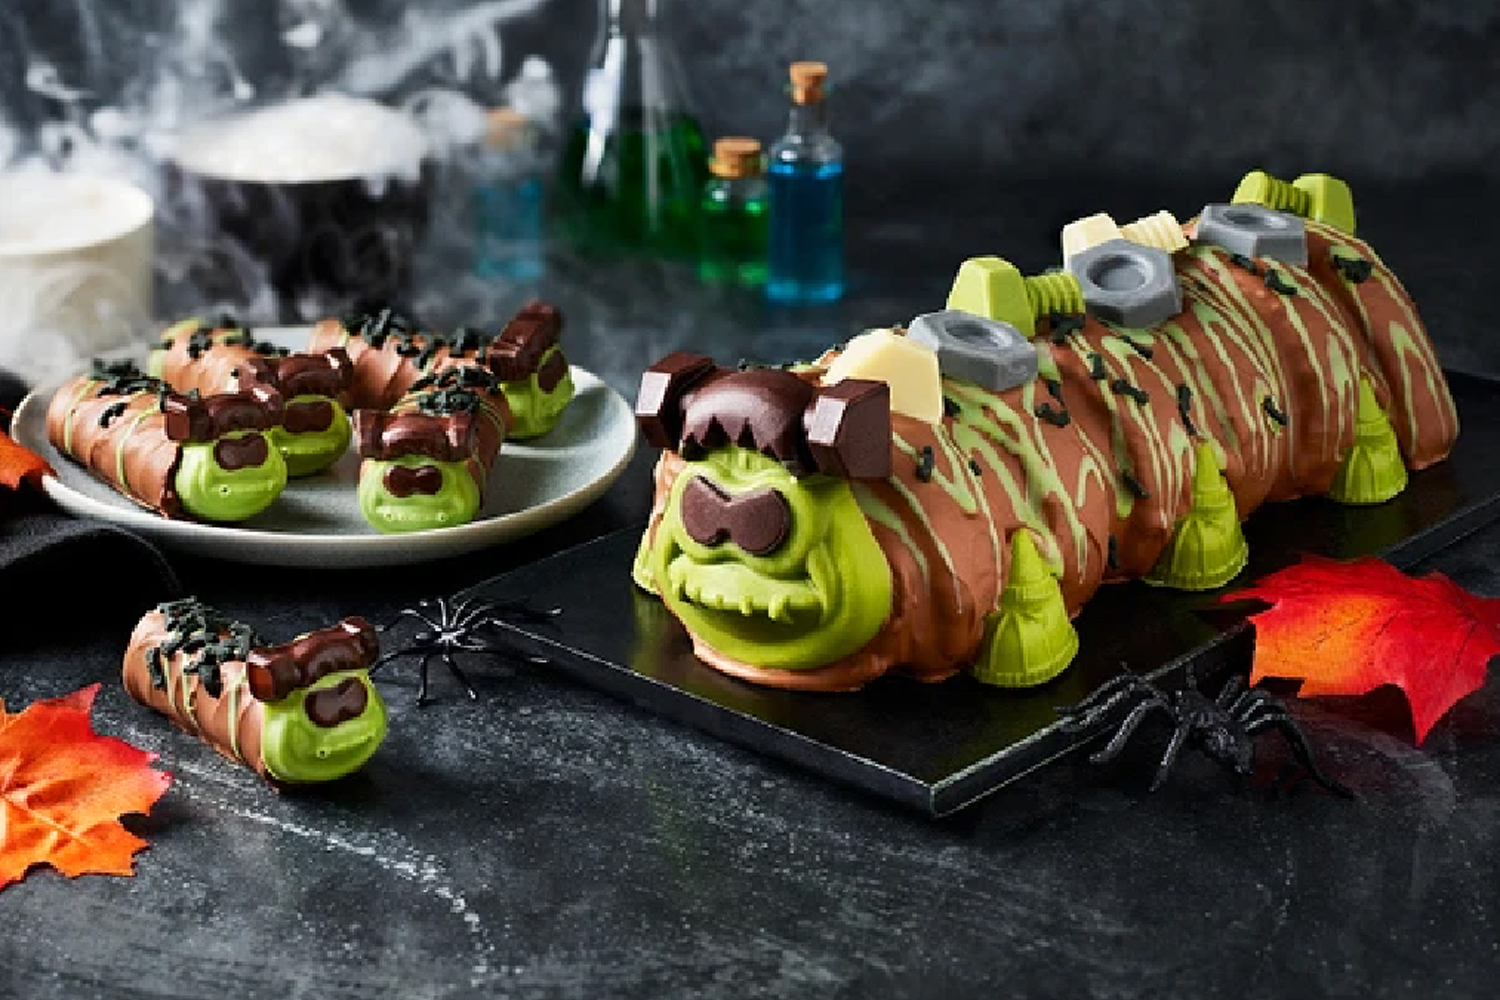 You can now buy a Frankencolin the caterpillar cake to celebrate Halloween & there are also mini versions